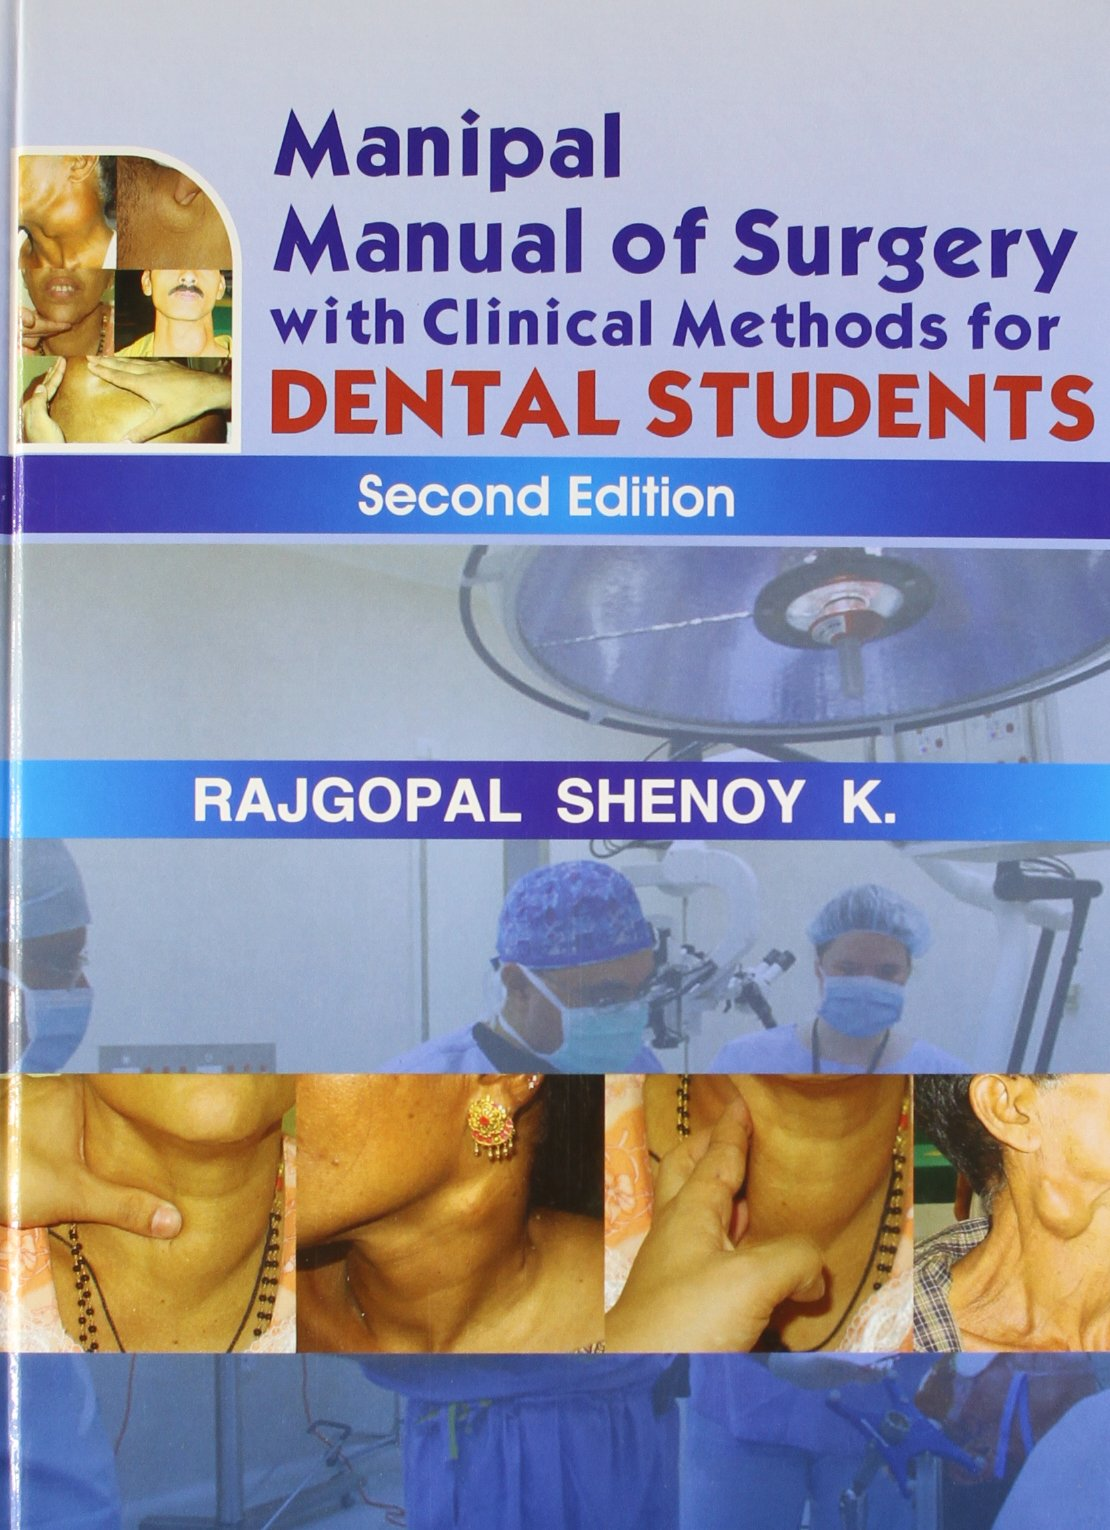 Buy Manipal Manual of Surgery with Clinical Methods for Dental Students  Book Online at Low Prices in India | Manipal Manual of Surgery with  Clinical Methods ...